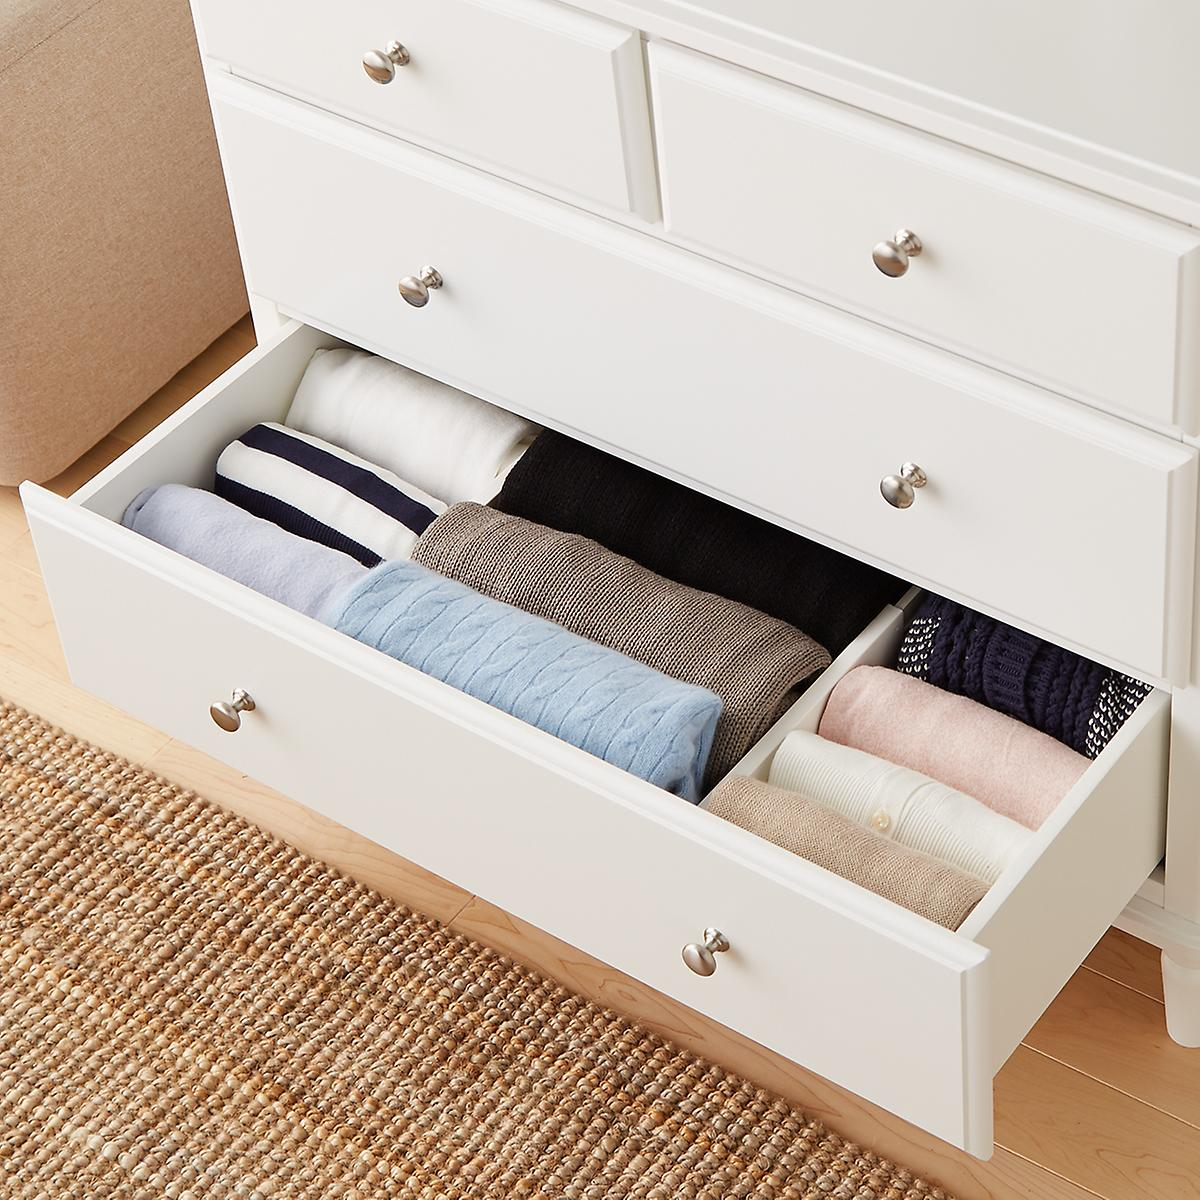 Picture of: Drawer Organizer Design